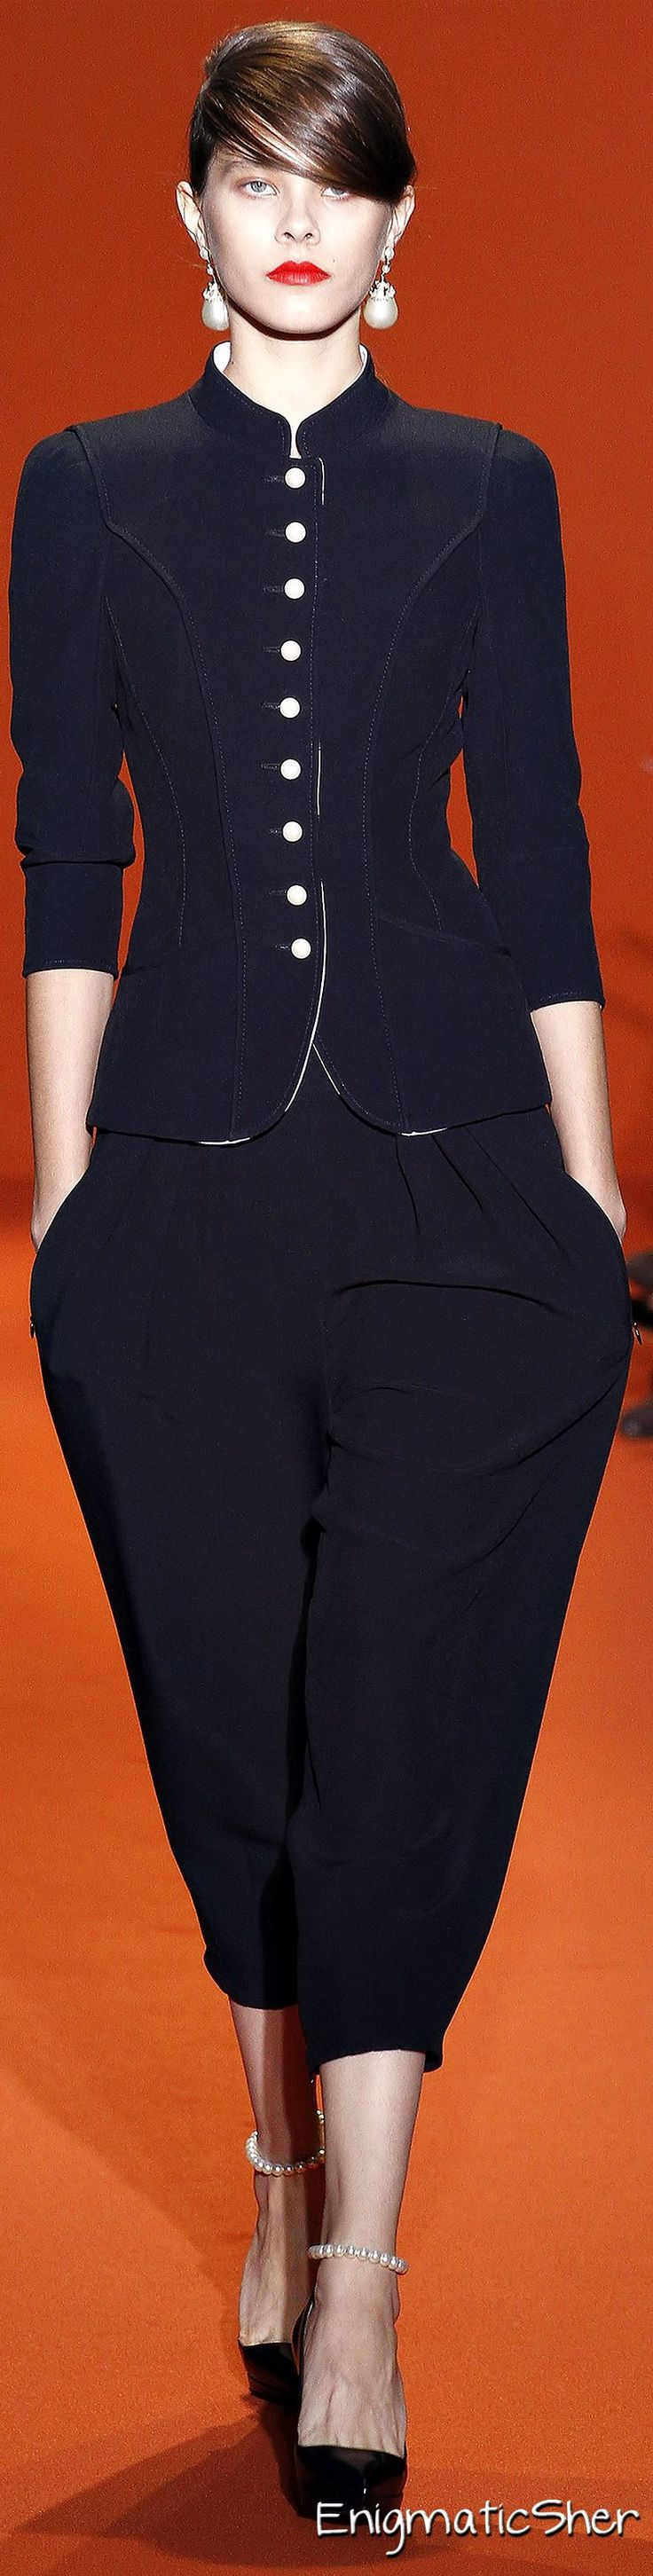 Andrew Gn Spring Summer 2013 Ready-To-Wear